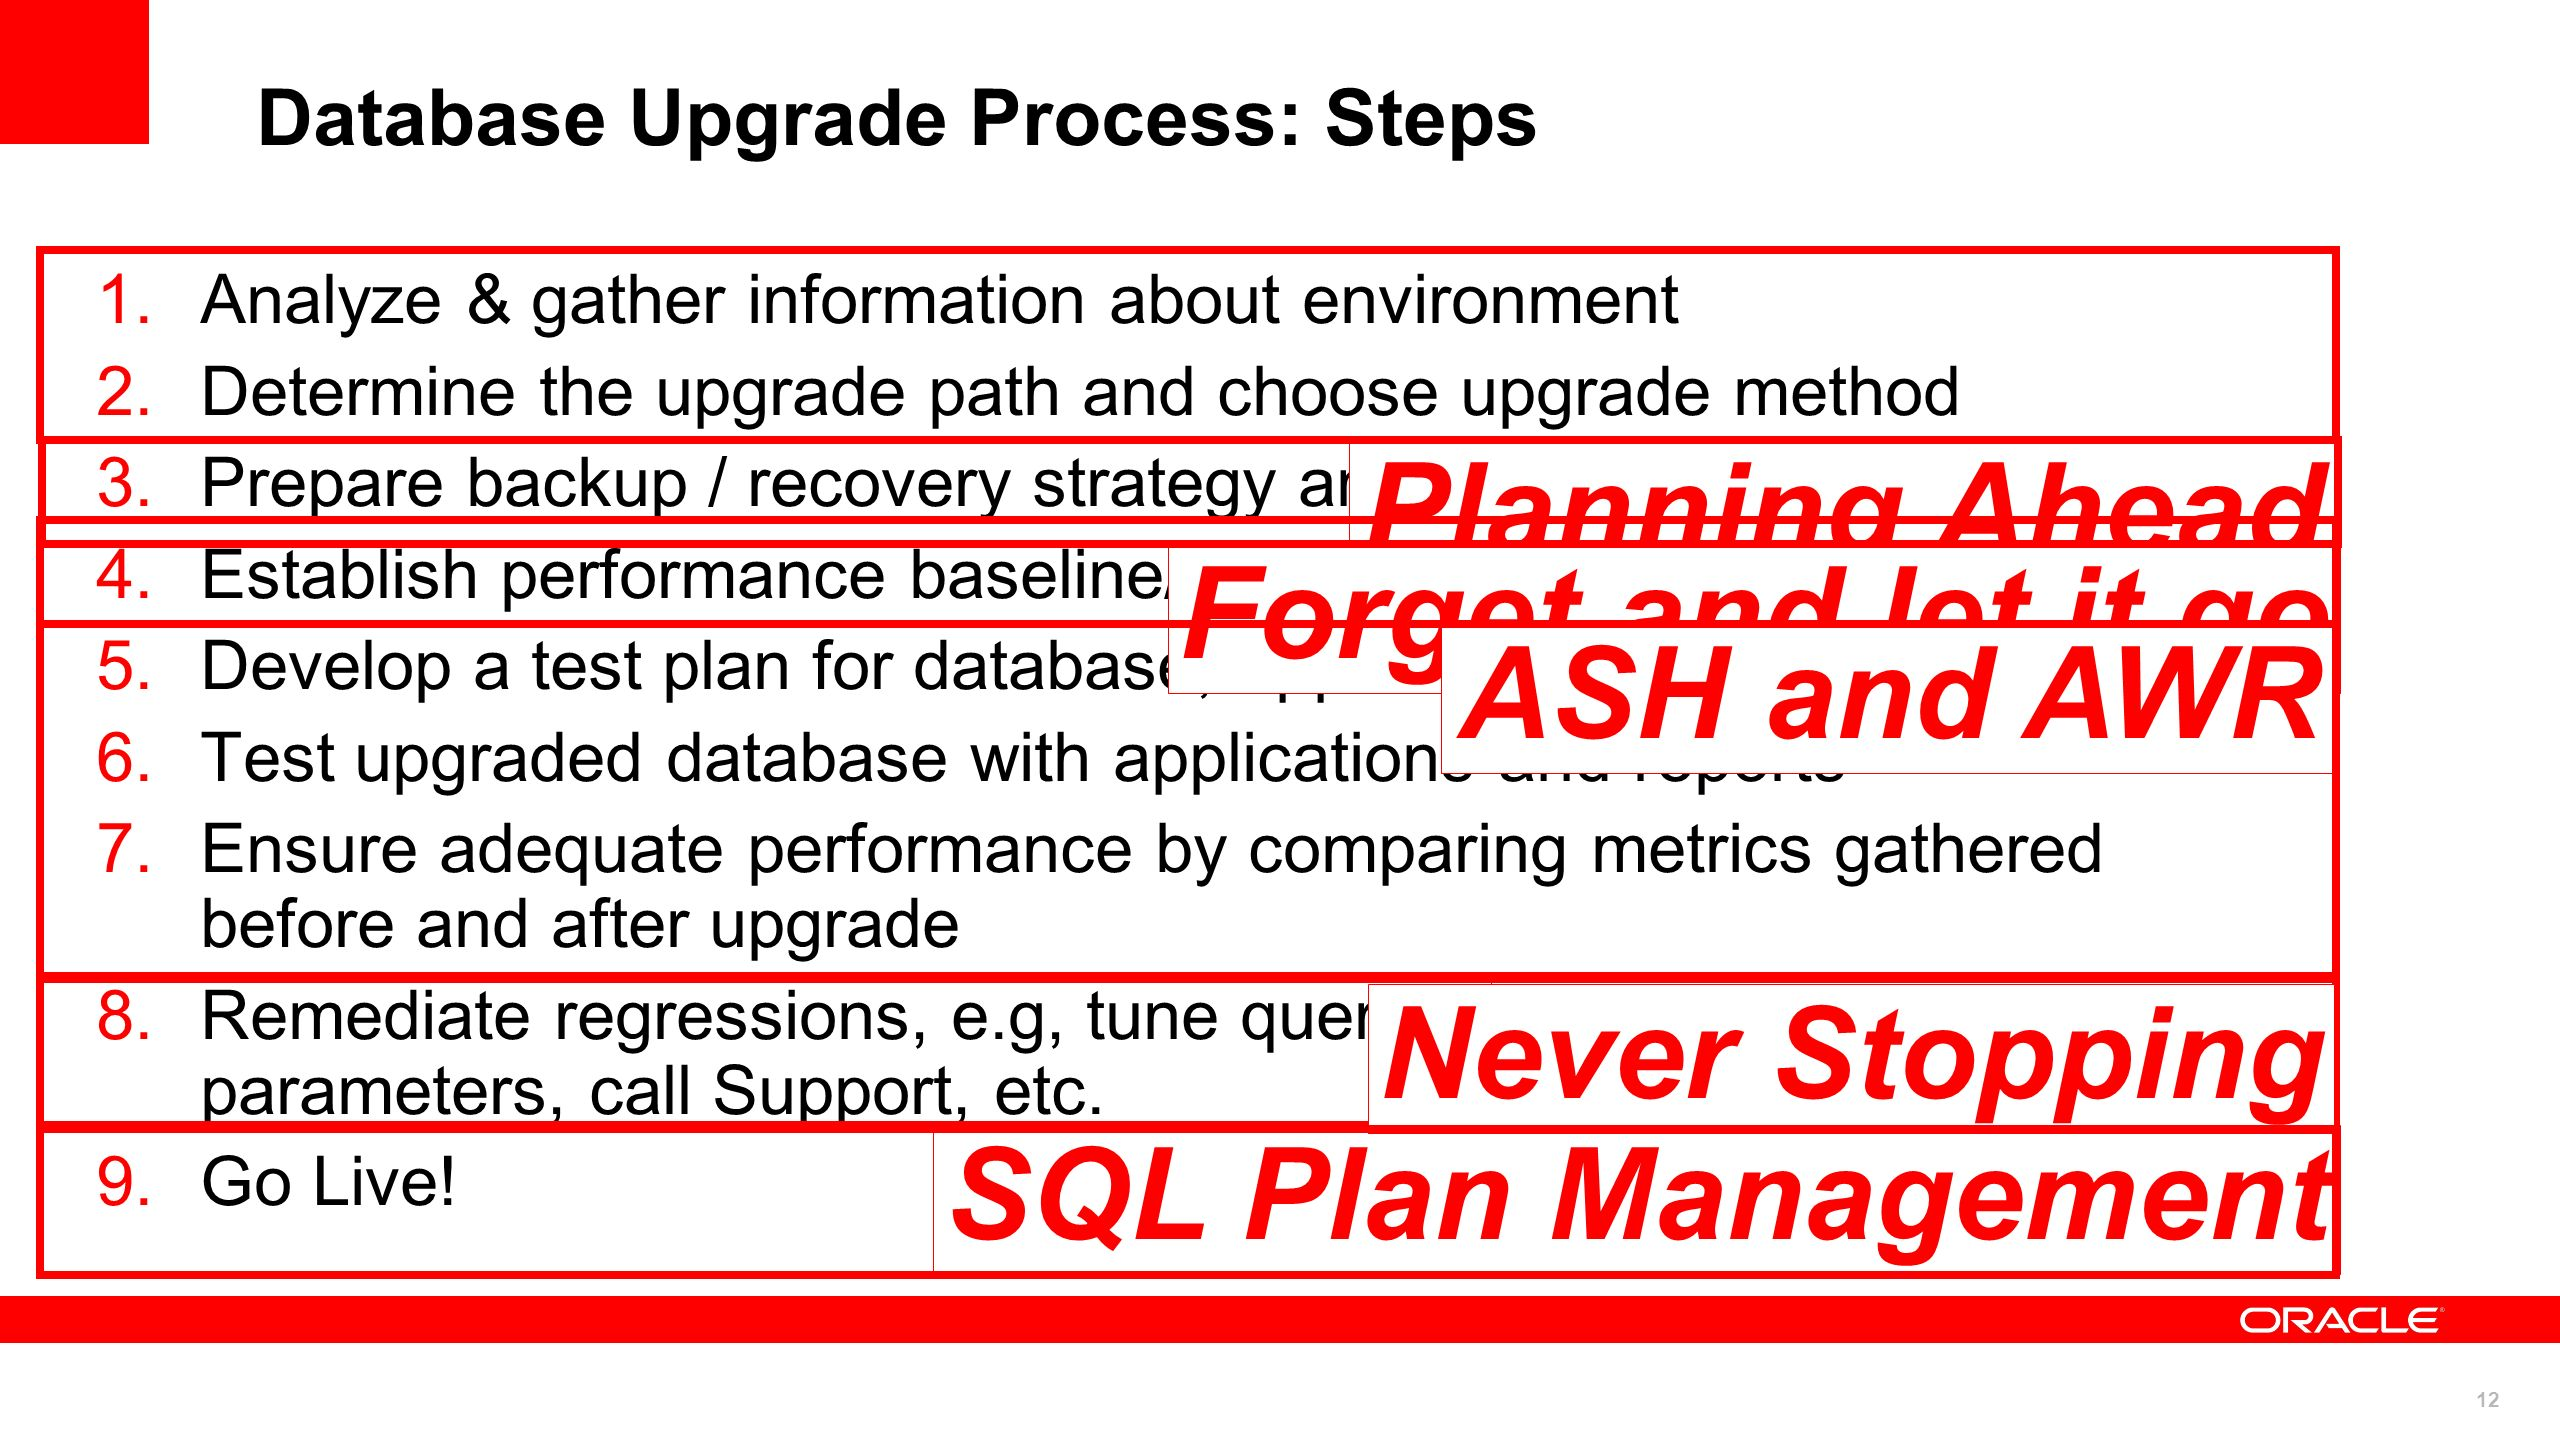 Database Upgrade Process: Steps